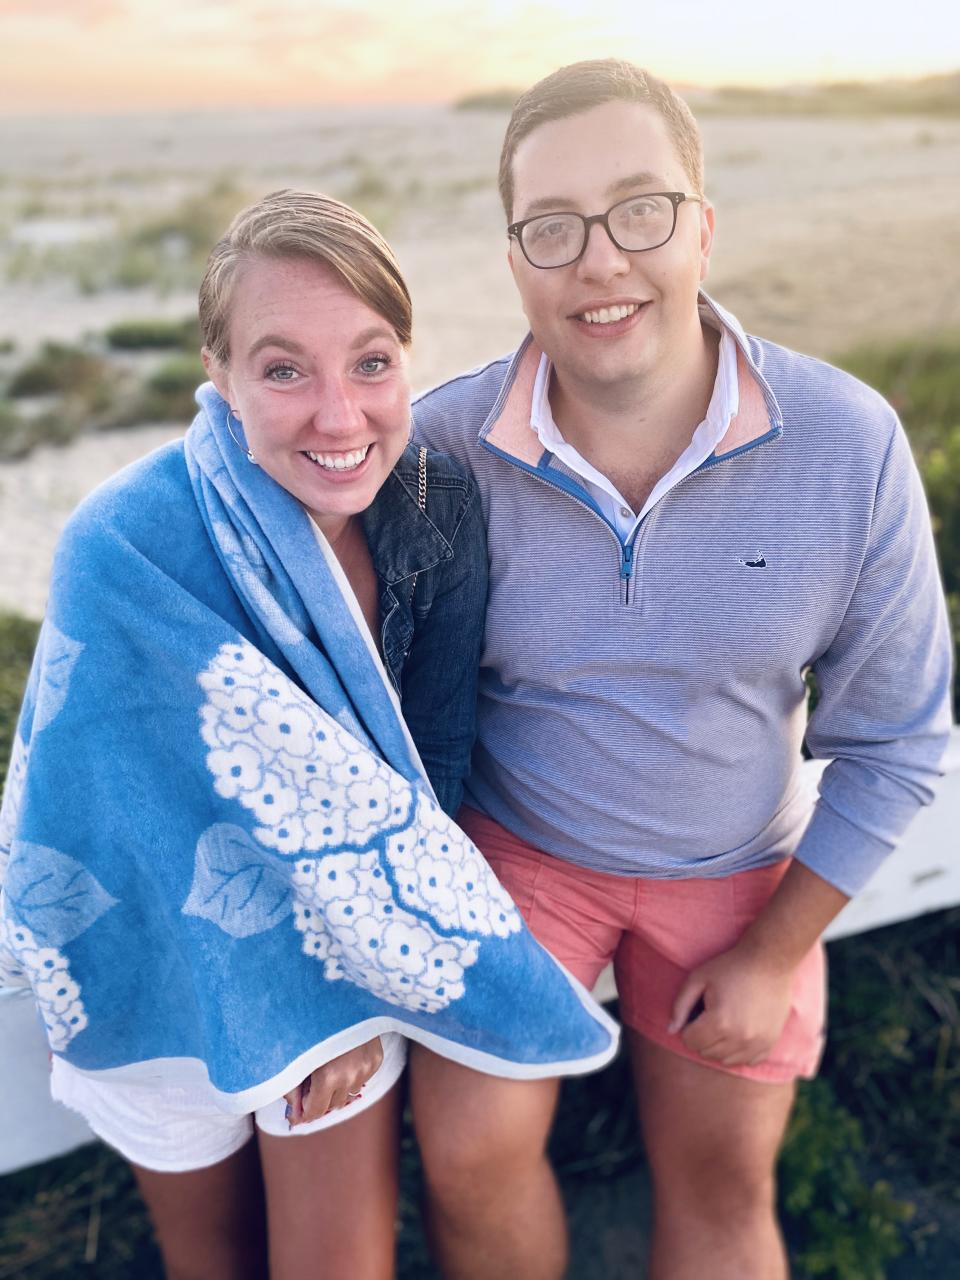 Hailey Murphy and Adam Lemp, pictured, had their wedding plans upended by COVID-19. They postponed their wedding to 2021, but decided to take a first moon, or trip on their original wedding They join one-third of engaged couples in the trend, according to a recent survey by Zola and TravelZoo.(Courtesy of Hailey Murphy)